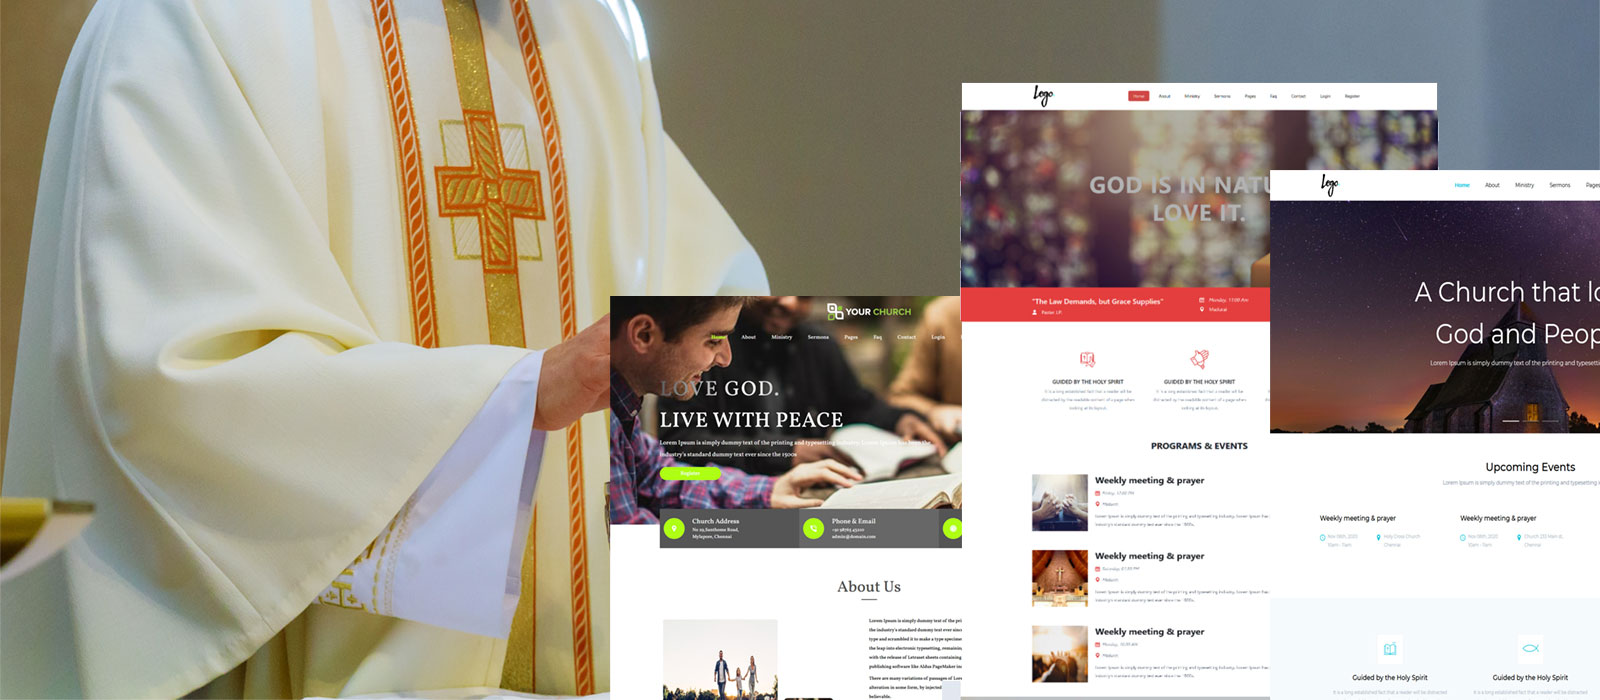 Church Website Builder Solutions and Church Website Design and Development Services